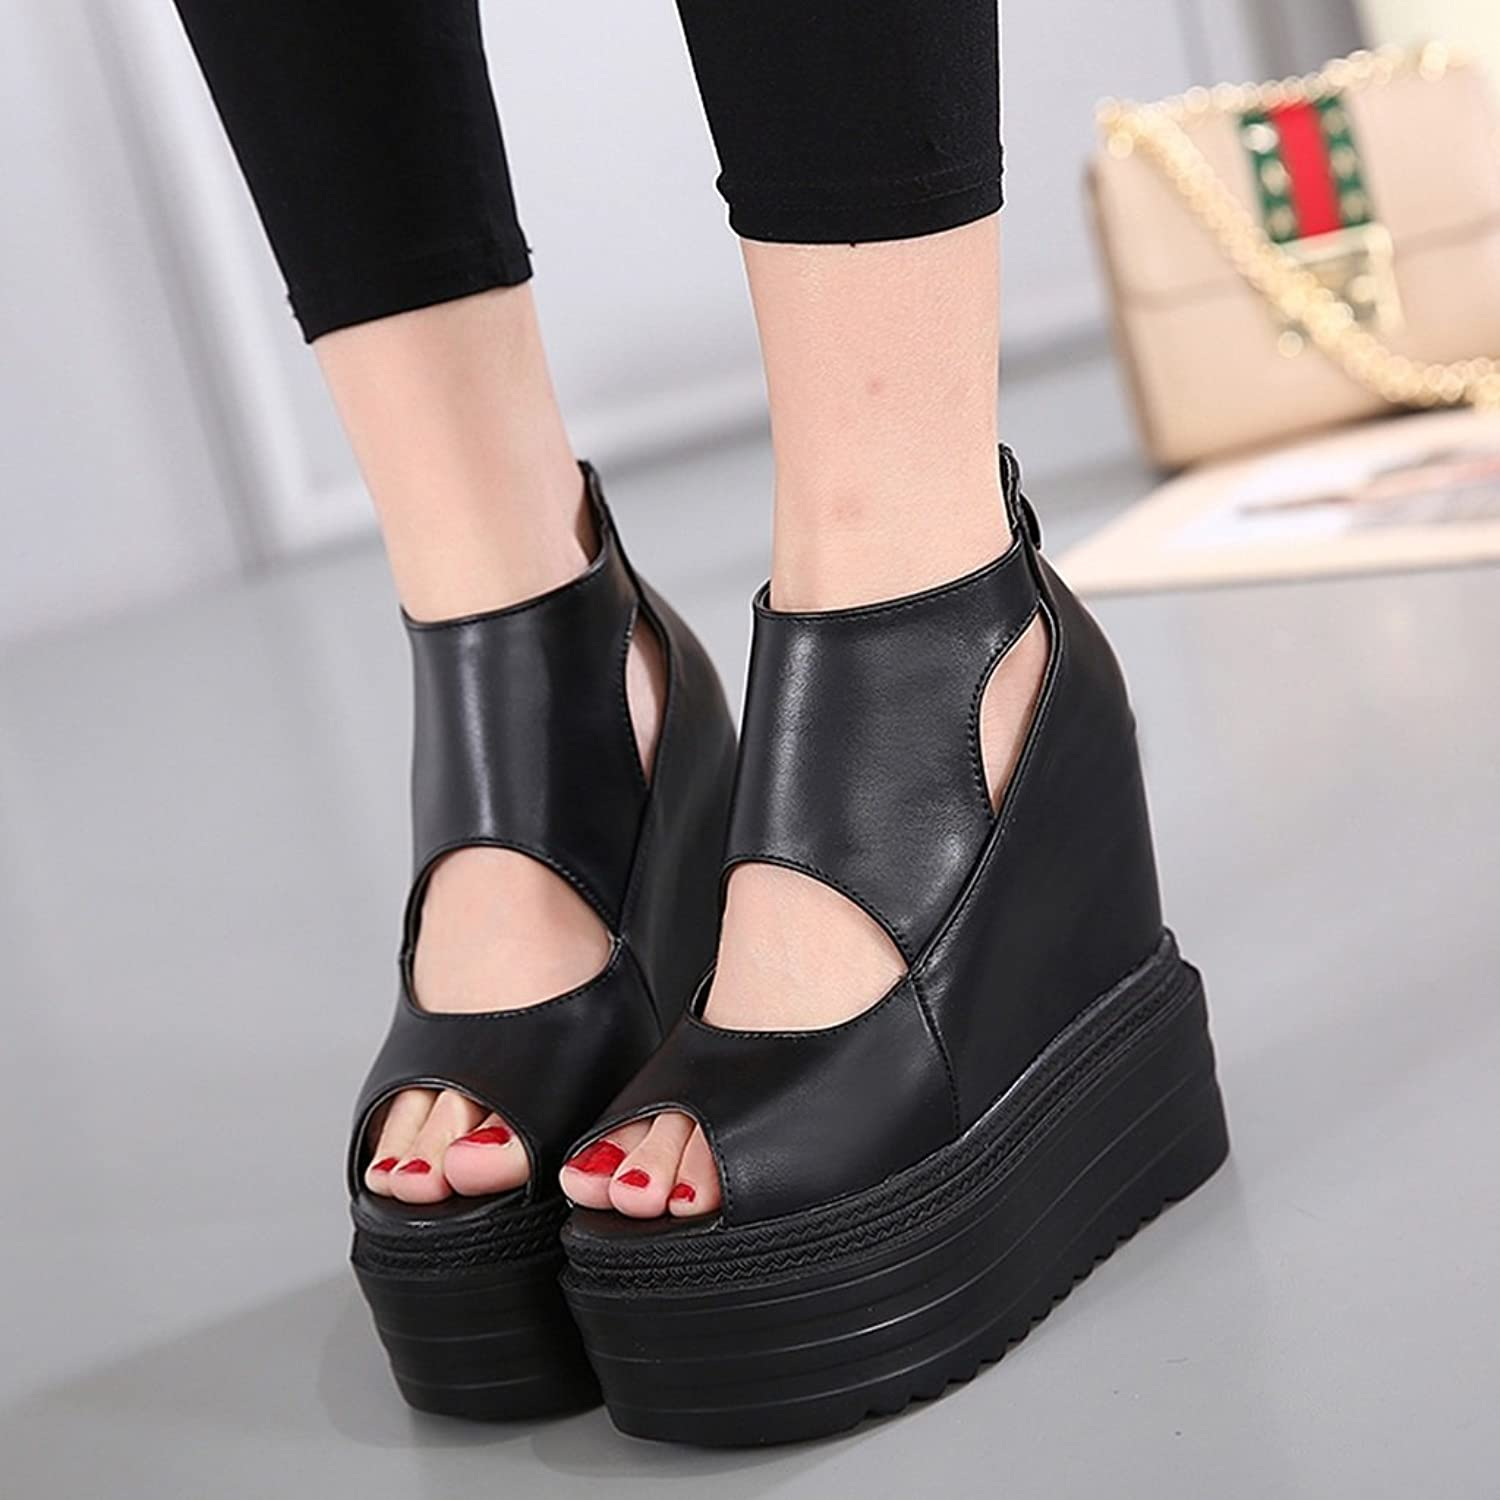 High Heels Fish Mouth shoes Super high Heels Increased high Cakes shoes Hollow Waterproof shoes 14CM Wedge Heel Platform shoes Ladies sandals (color   Black, Size   34)